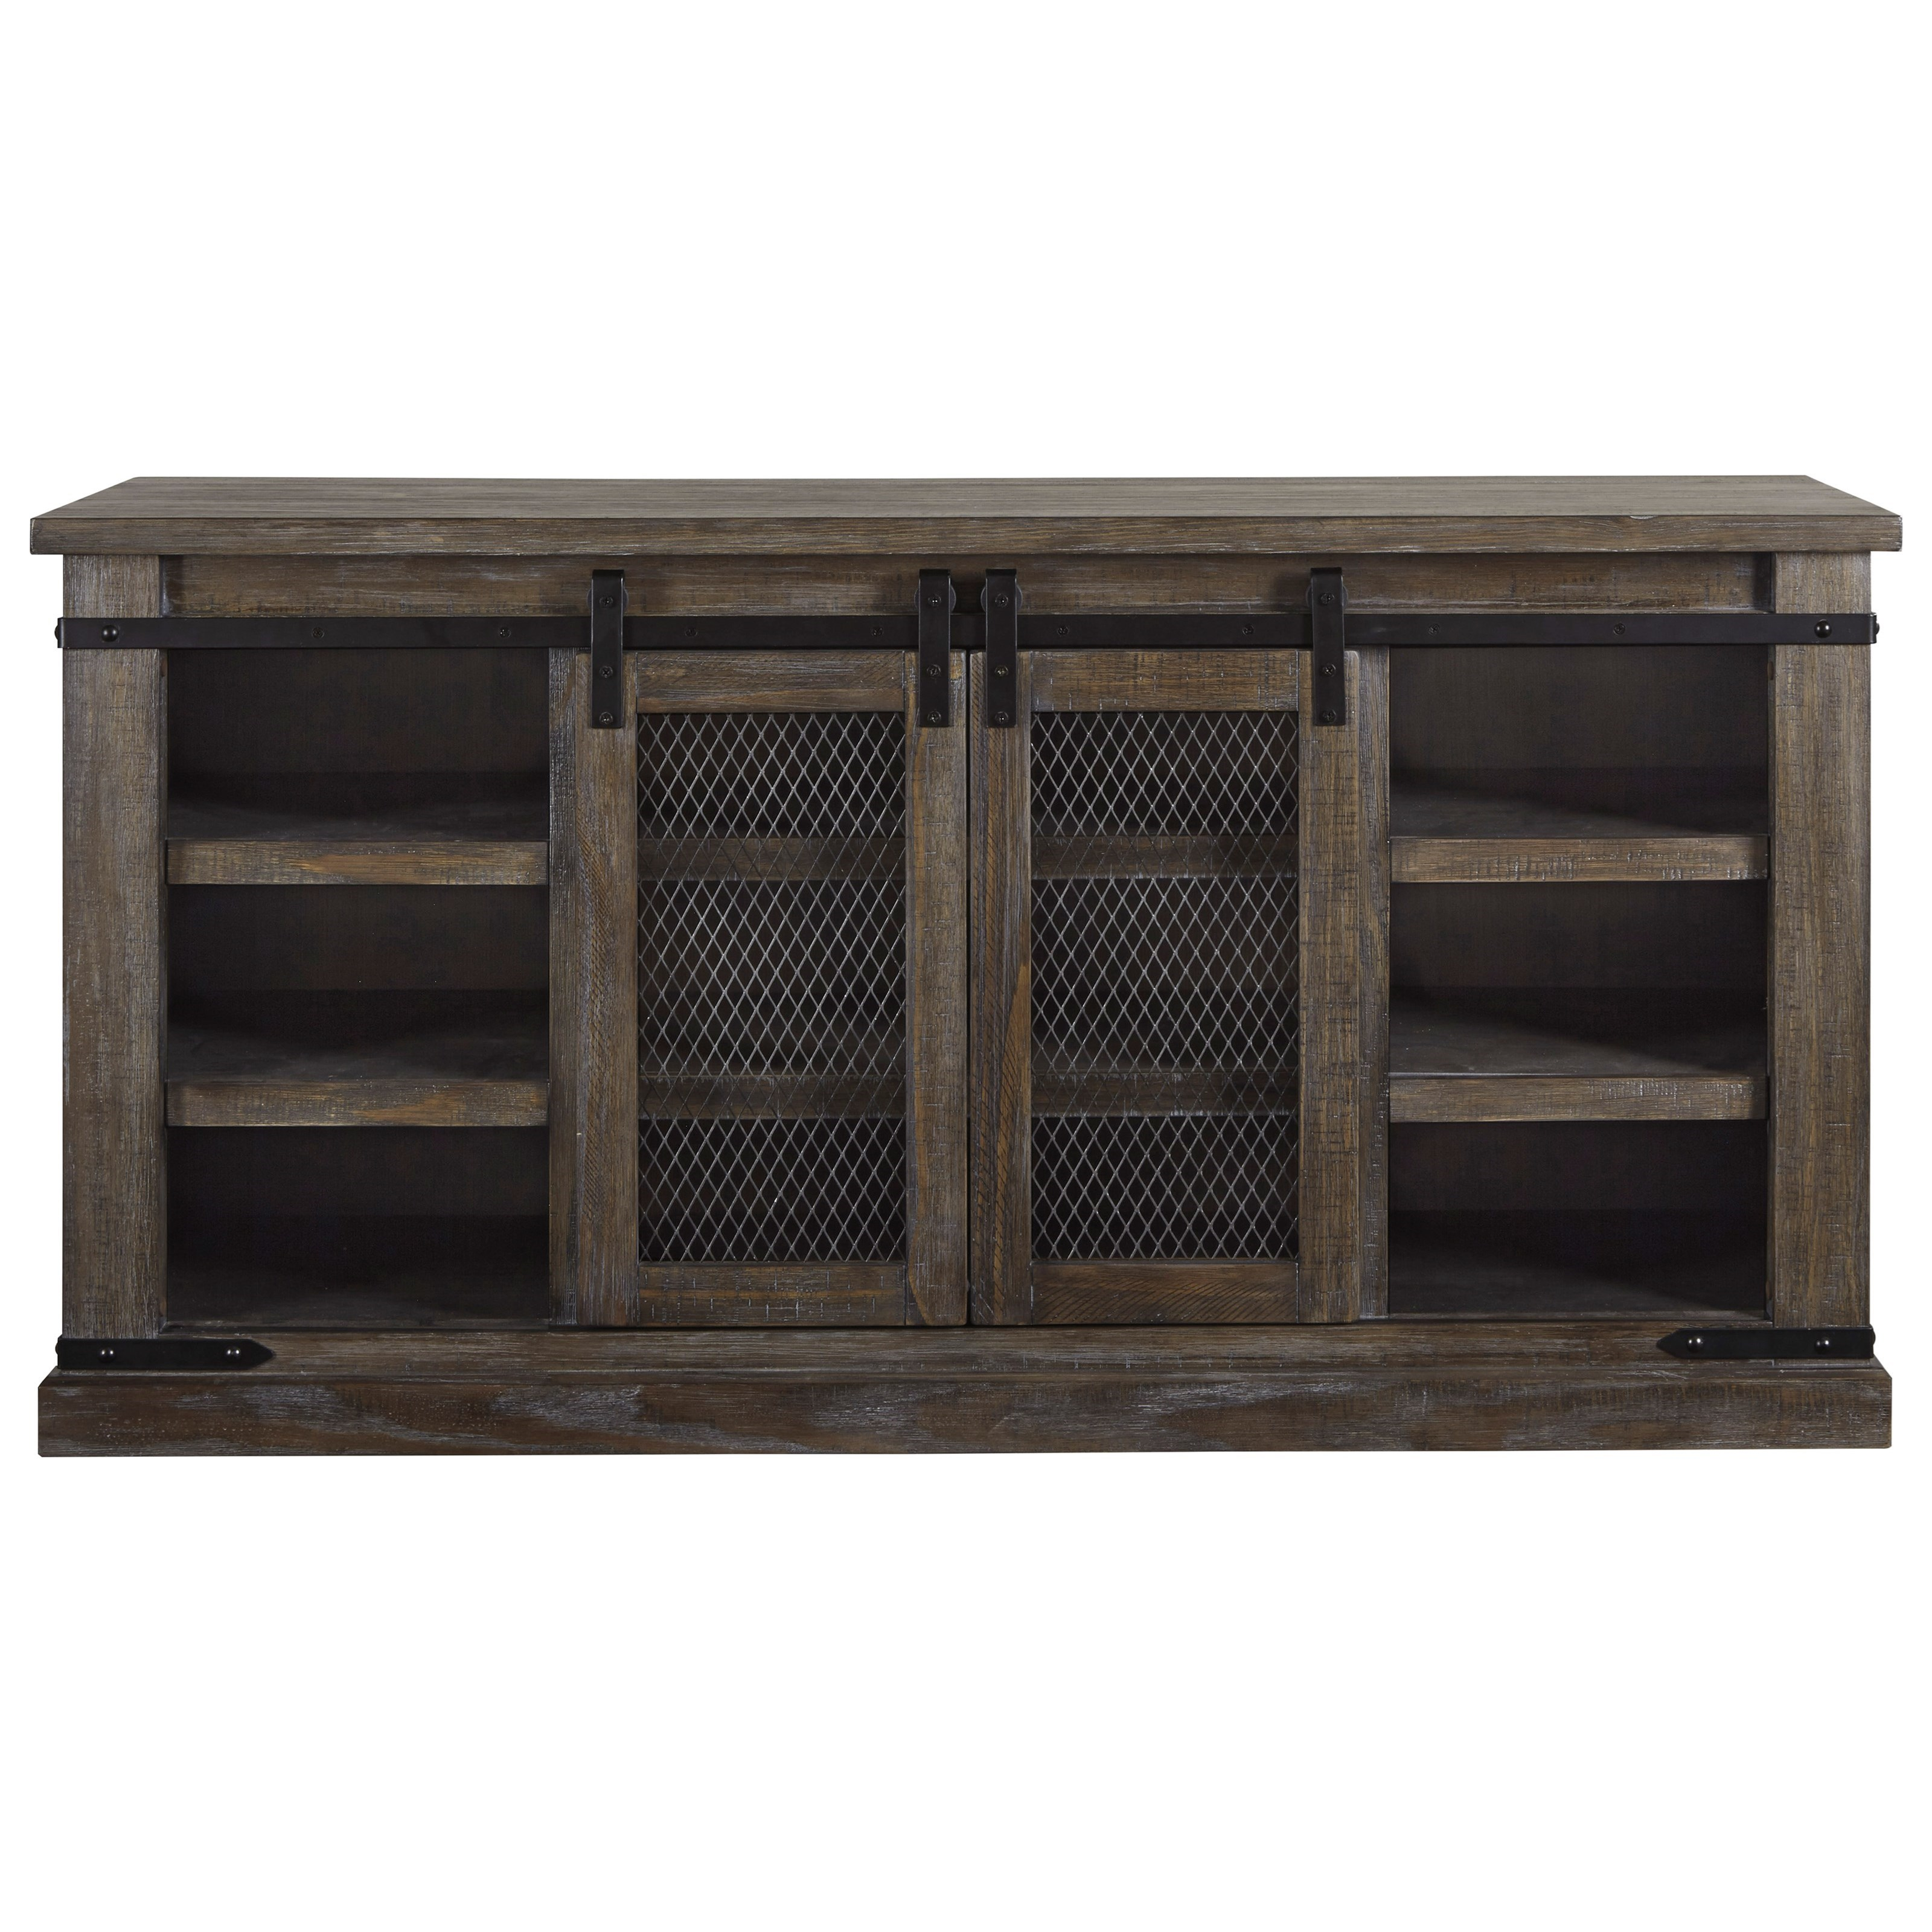 Danell Ridge Large TV Stand by Signature Design by Ashley at Northeast Factory Direct